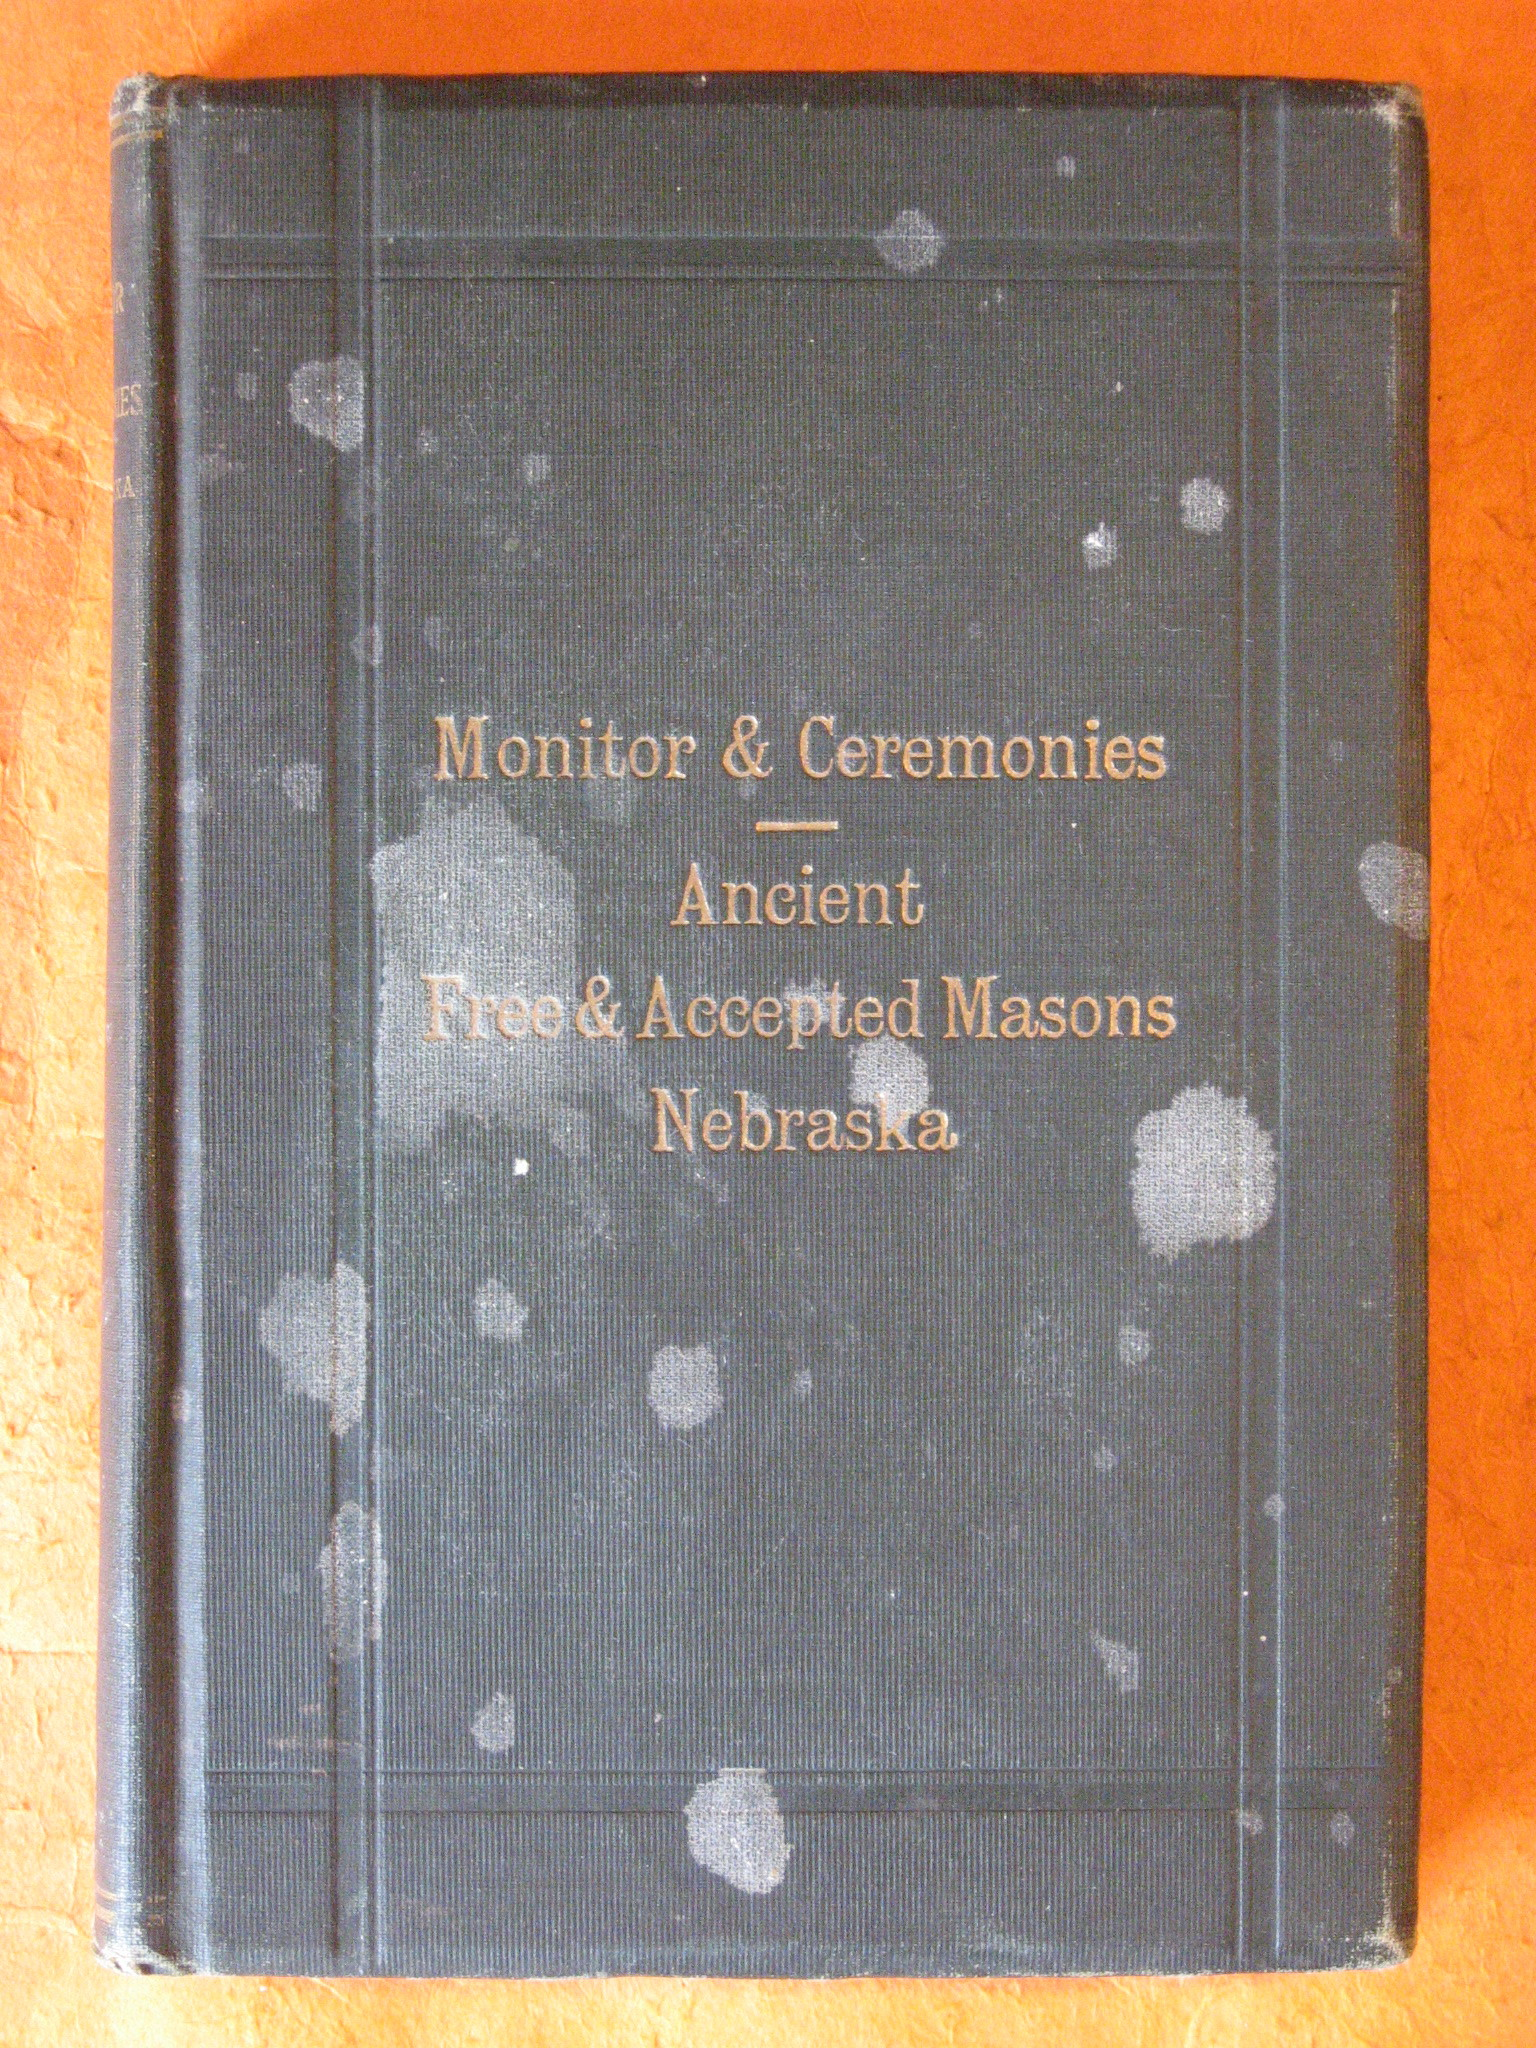 Monitor and Ceremonies, Ancient, Free, and Accepted Masons Nebraska, Thummel, George H.; French, Robert E.; White, Francis E.